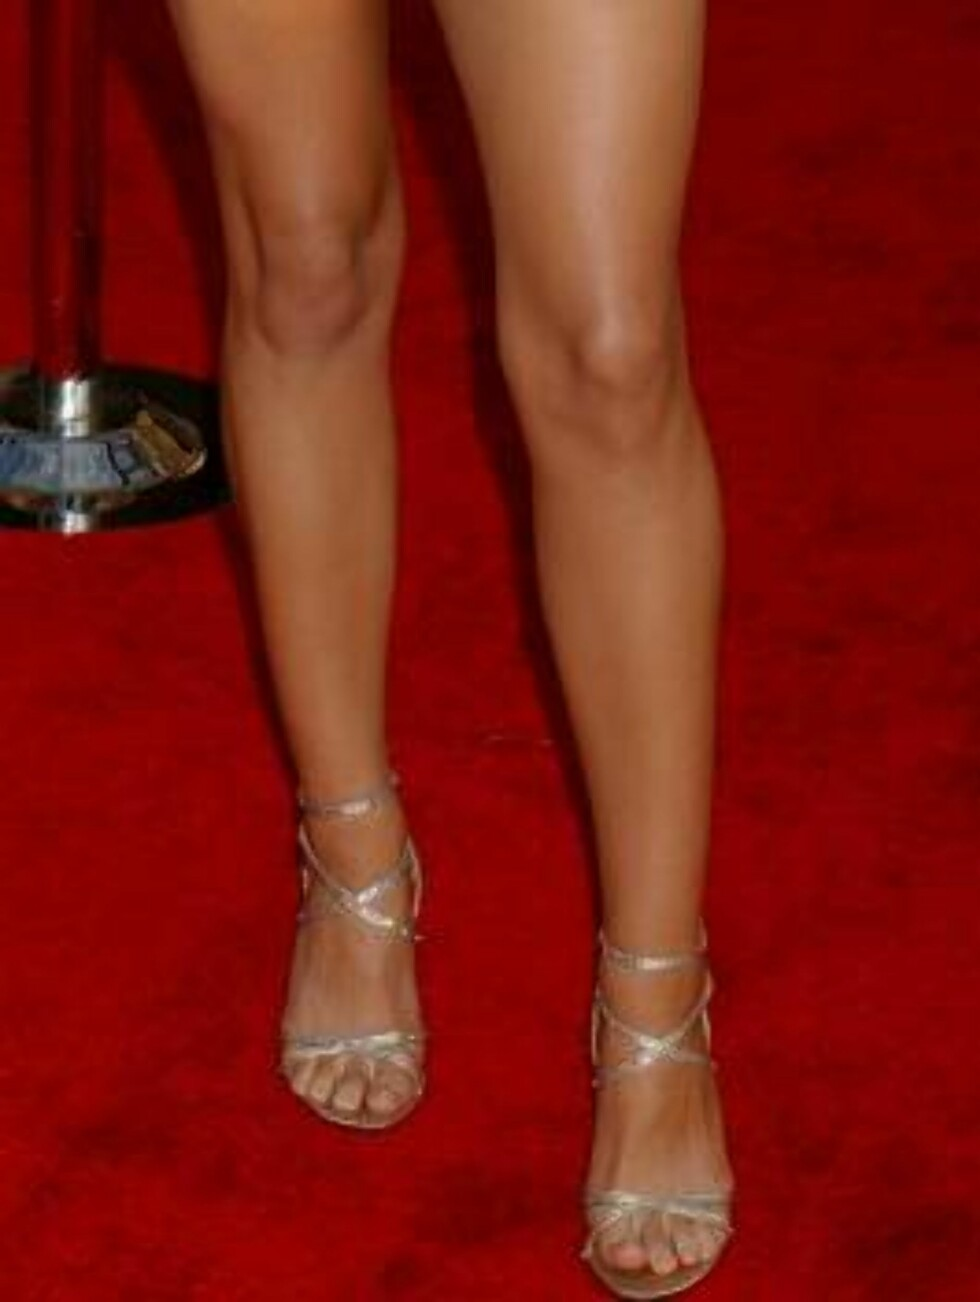 D 69863-25   Katherine McPhee.    OBLIGATORY CREDIT - CAMERA PRESS / Gary Lewis. NOT FOR SALE IN:  USA.   American Idol contestant Katherine McPhee attending the 2006 American Music Awards at the Shrine Auditorium in Hollywood, California, USA, 21/11/2006 Foto: CAMERA PRESS